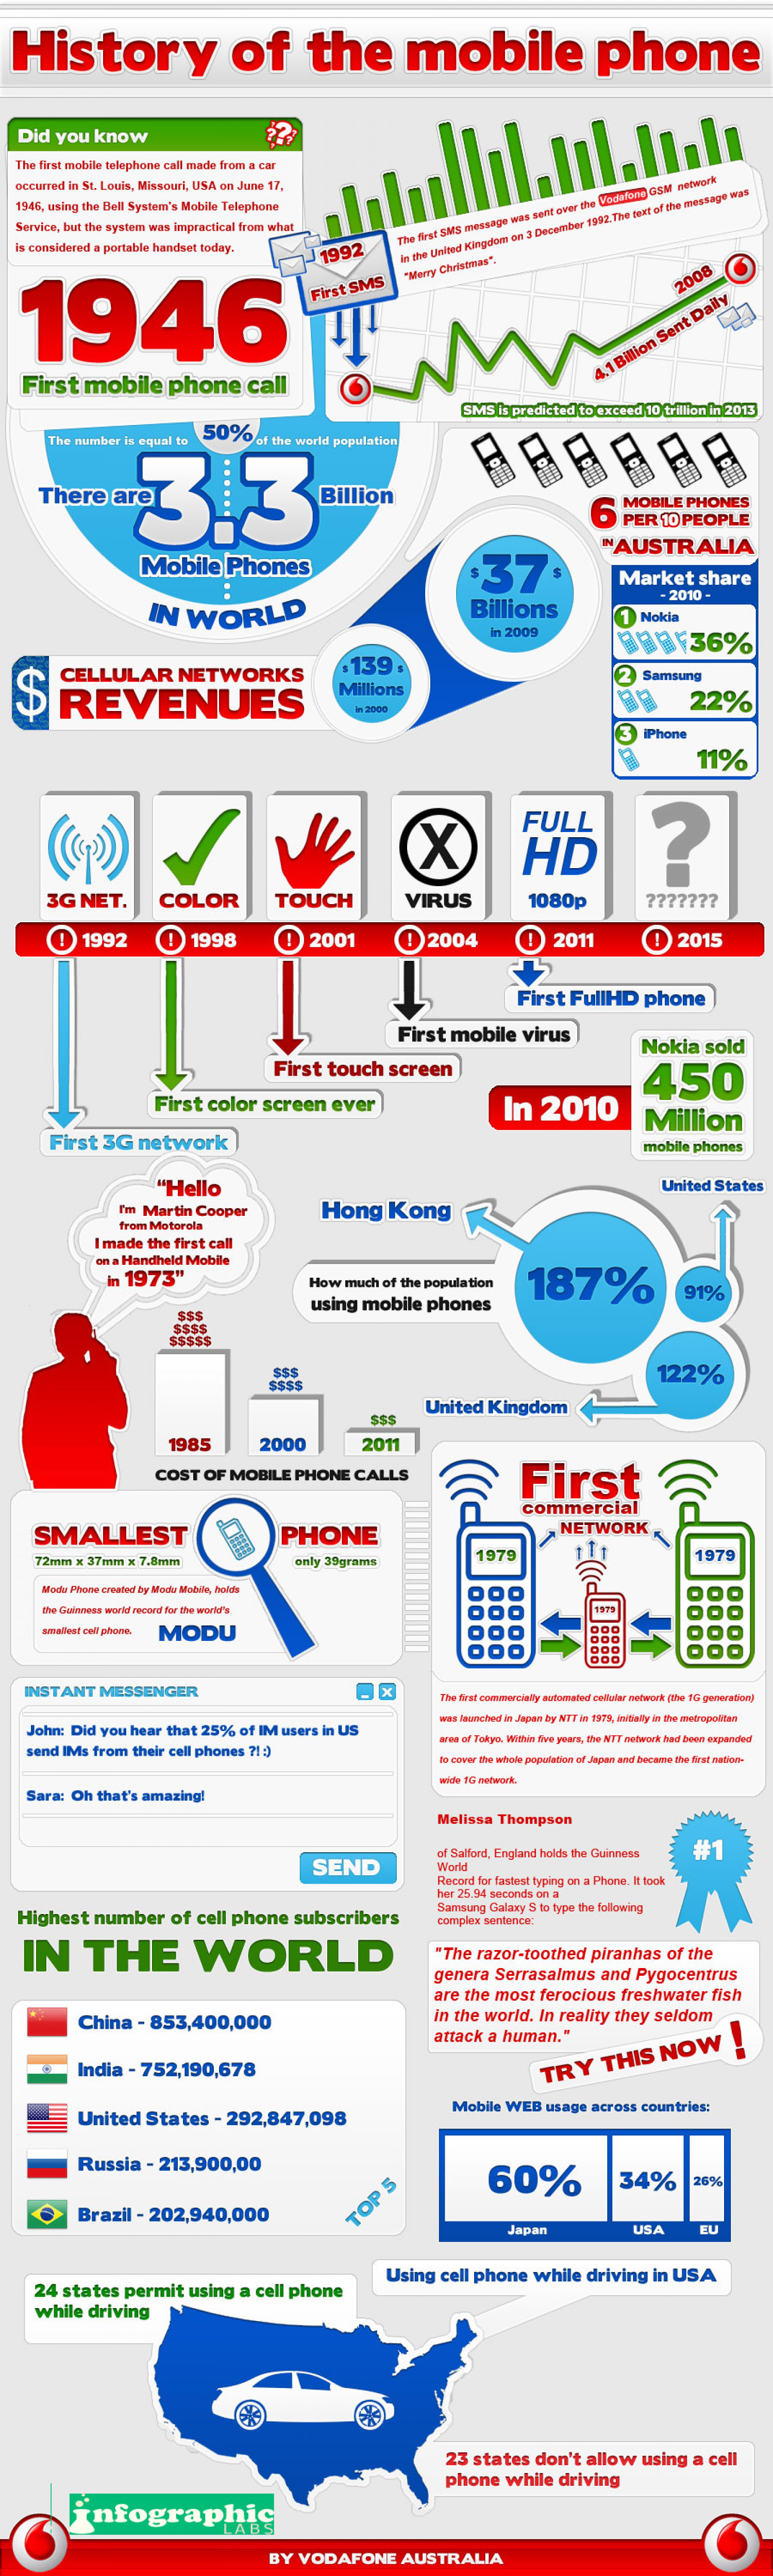 History of the mobile phone Infographic